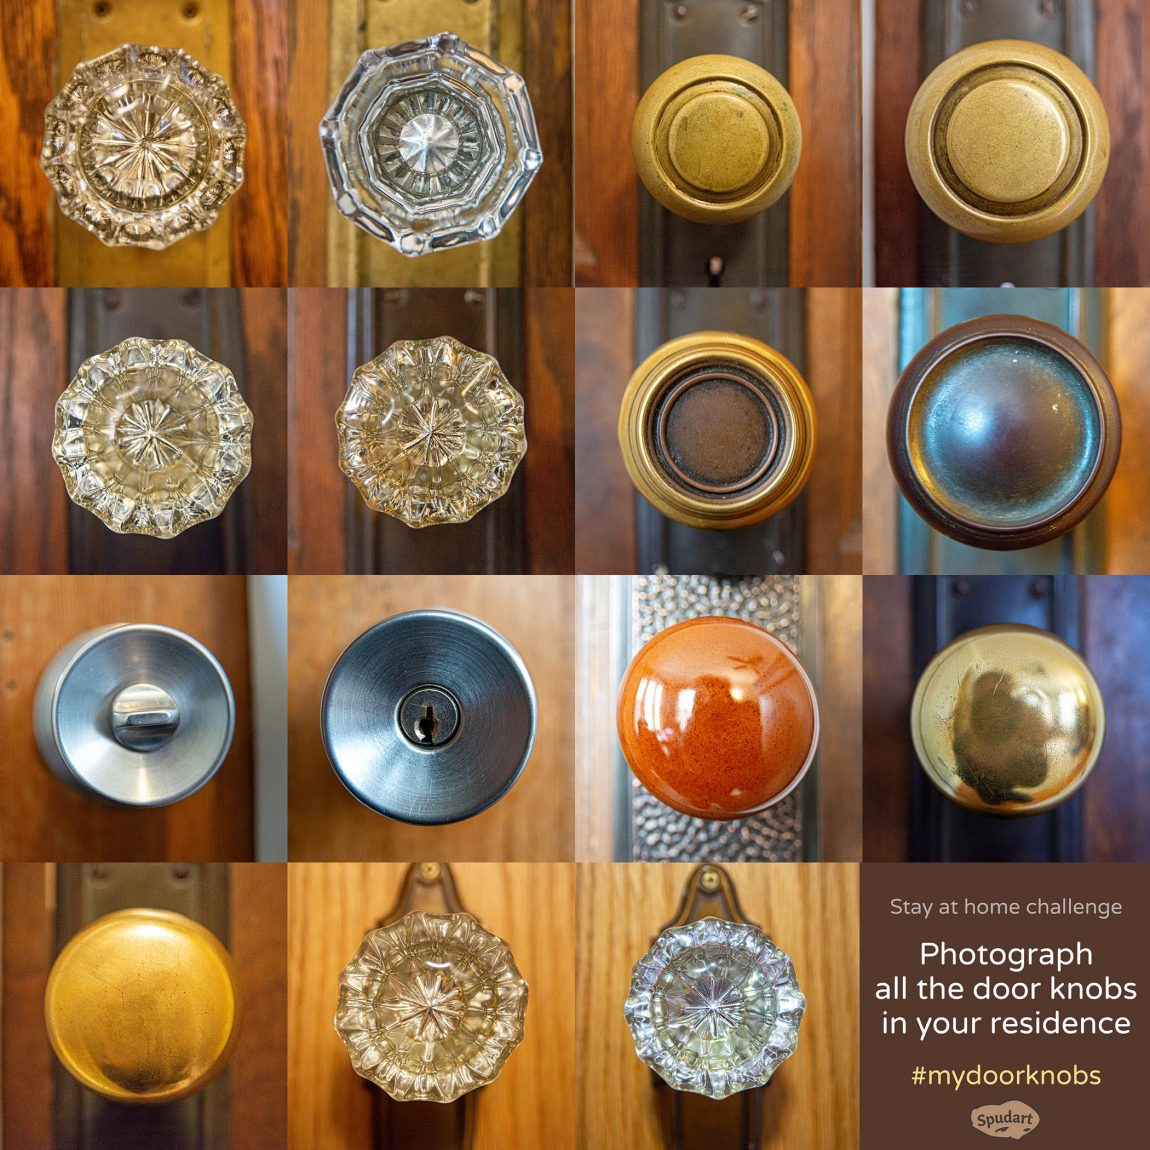 Stay at home challenge - Photograph all the door knobs in your residence 2